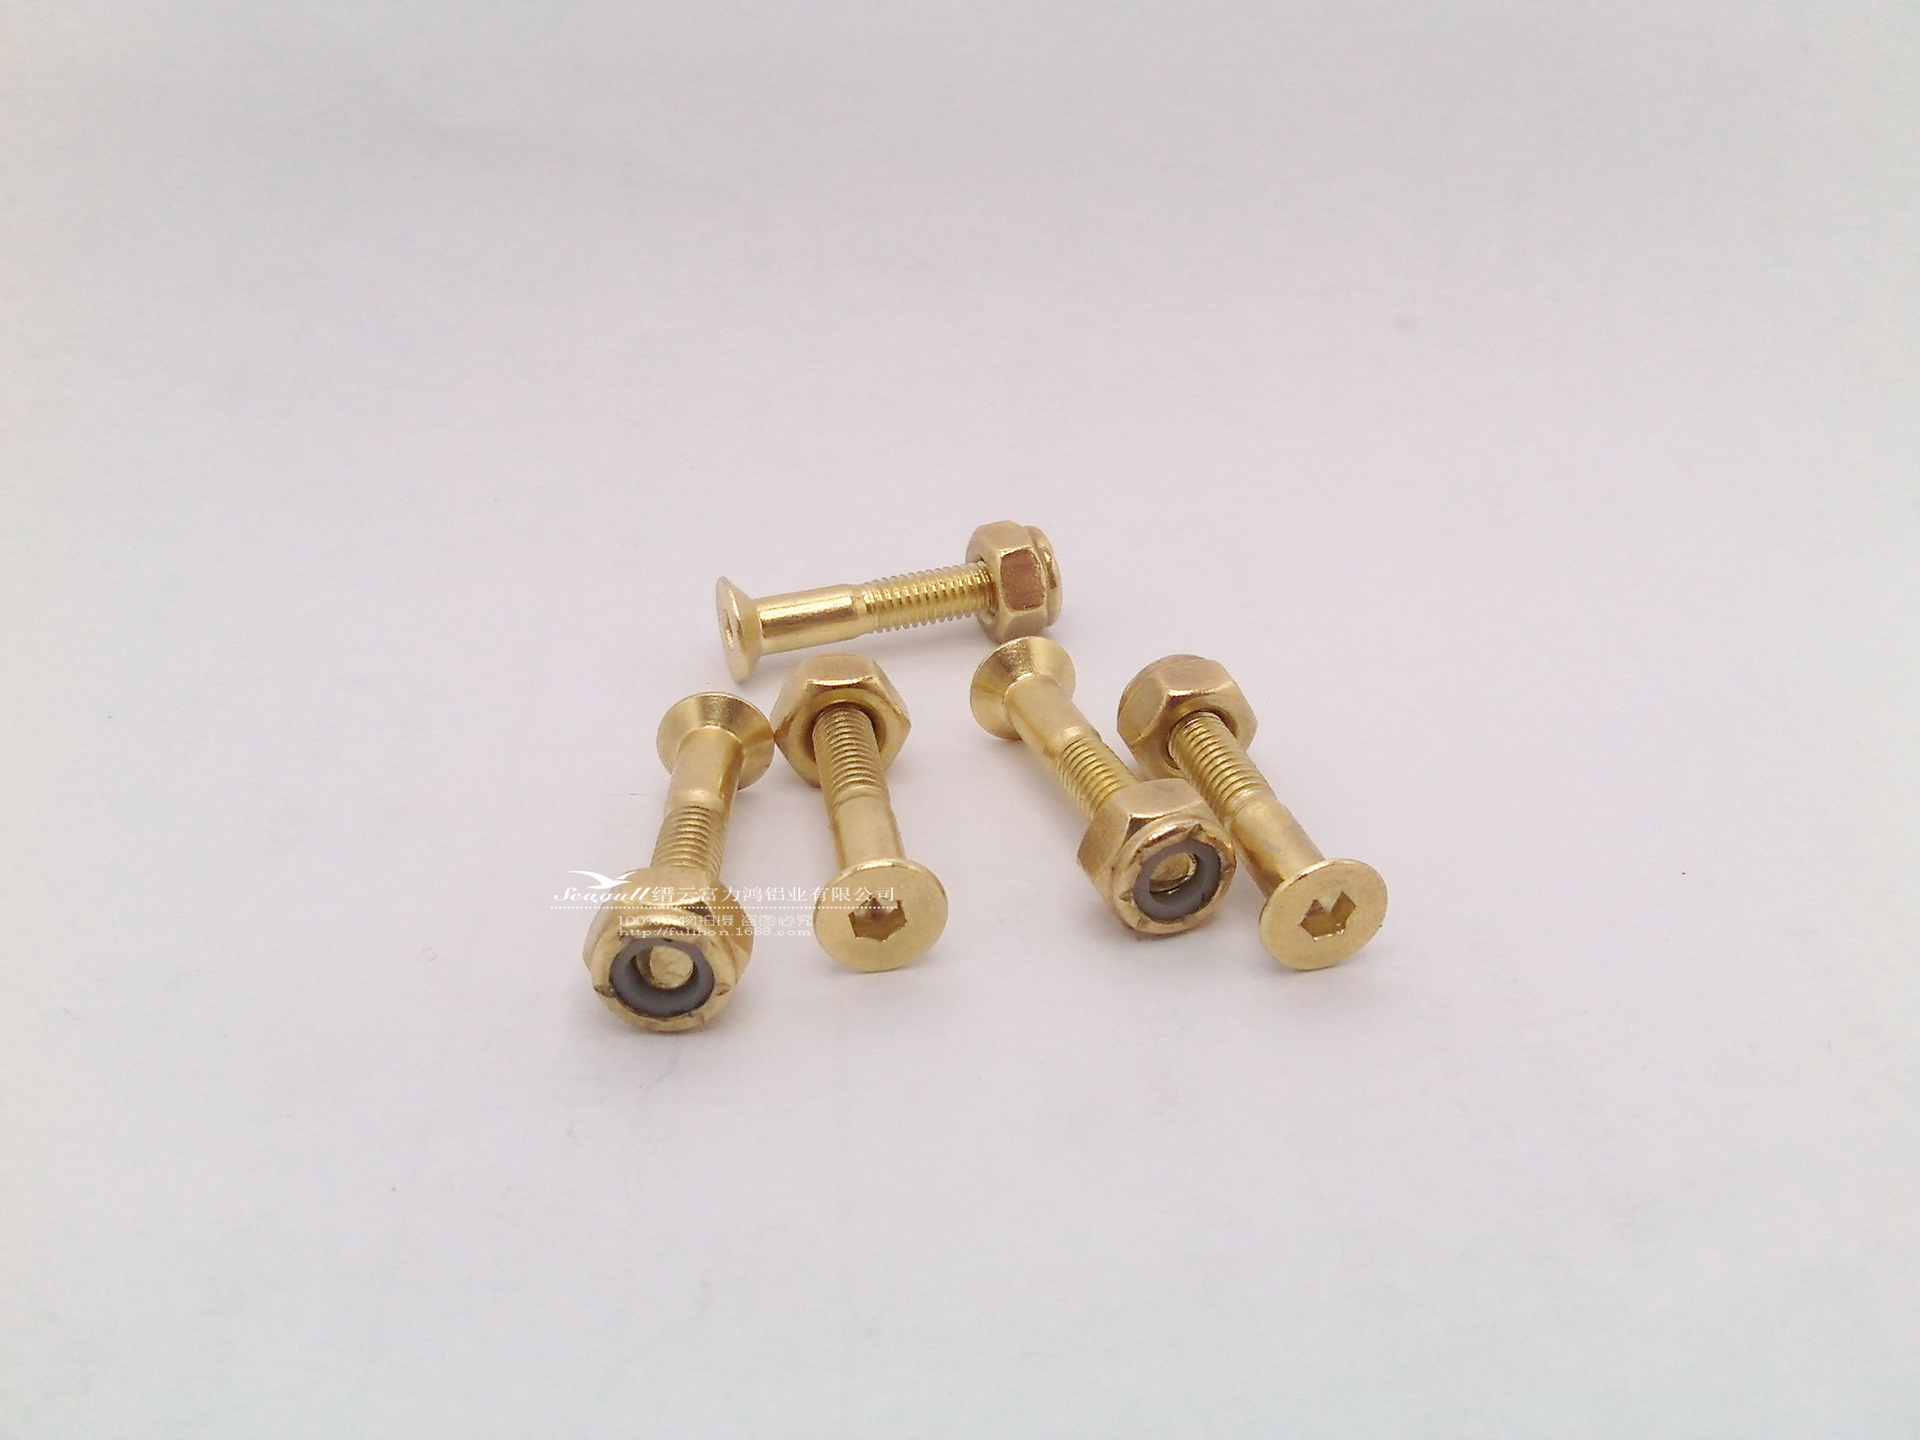 Gold-Tone Salad Head Hexagon Socket Semi-Dental Bridges Nail Screw, Nut, Skateboard Accessory